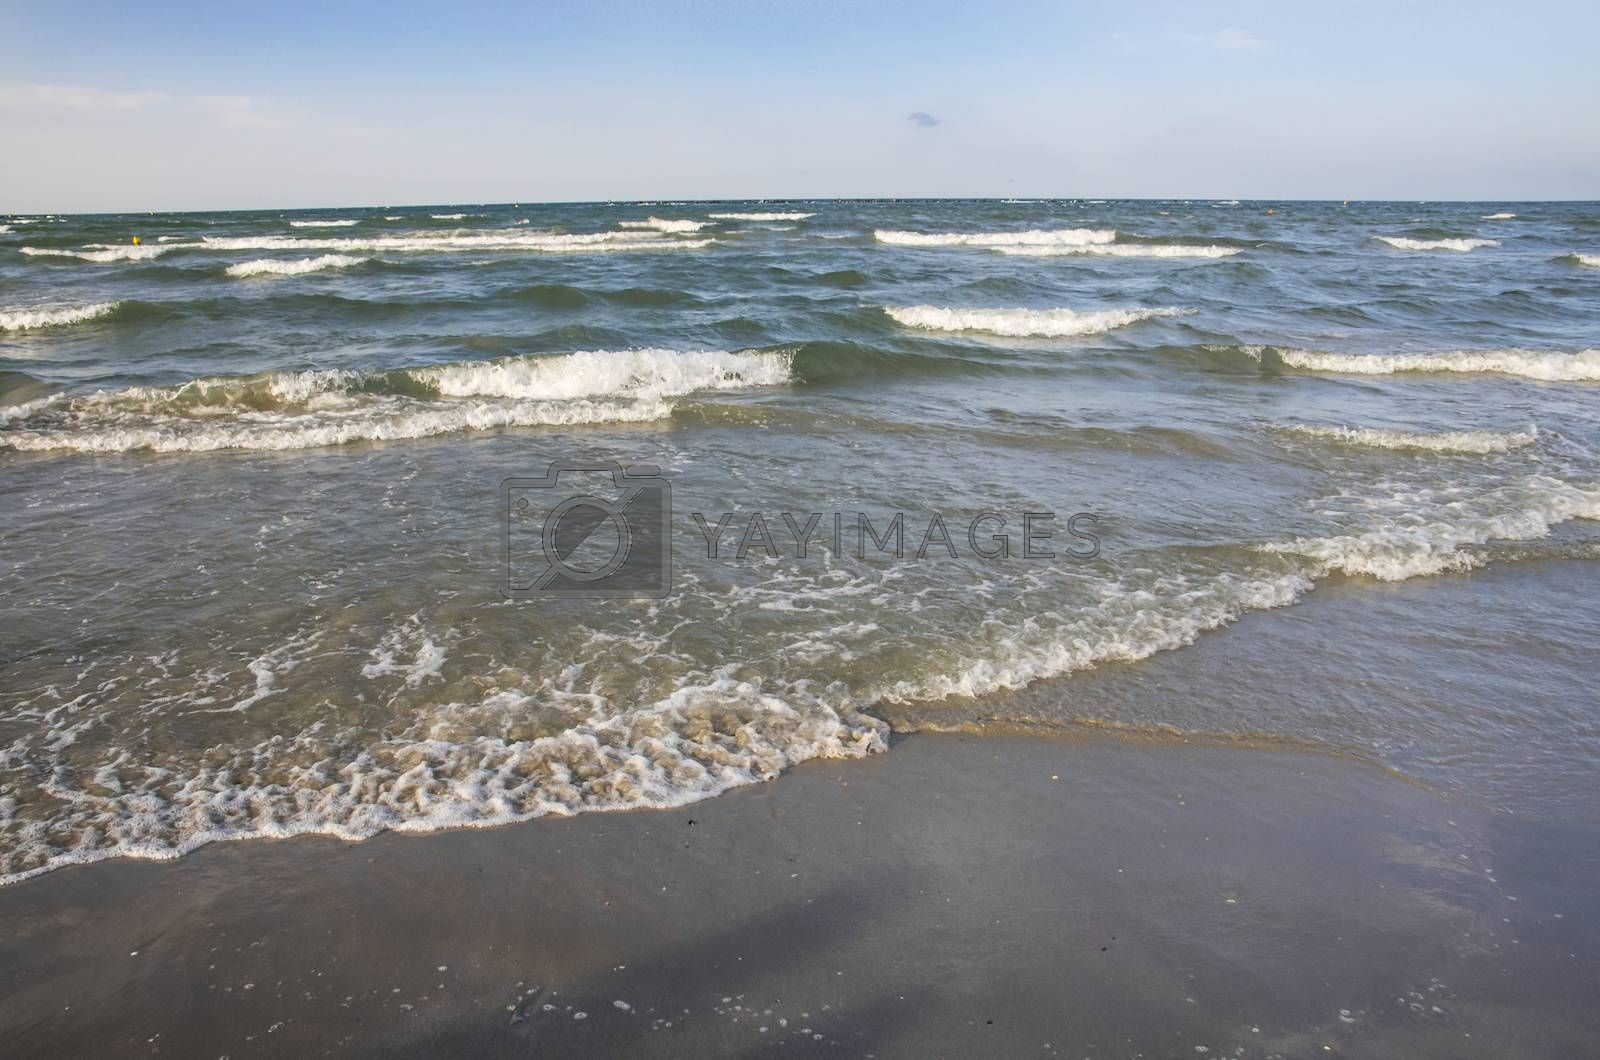 Sea waves on a sandy beach, Black Sea